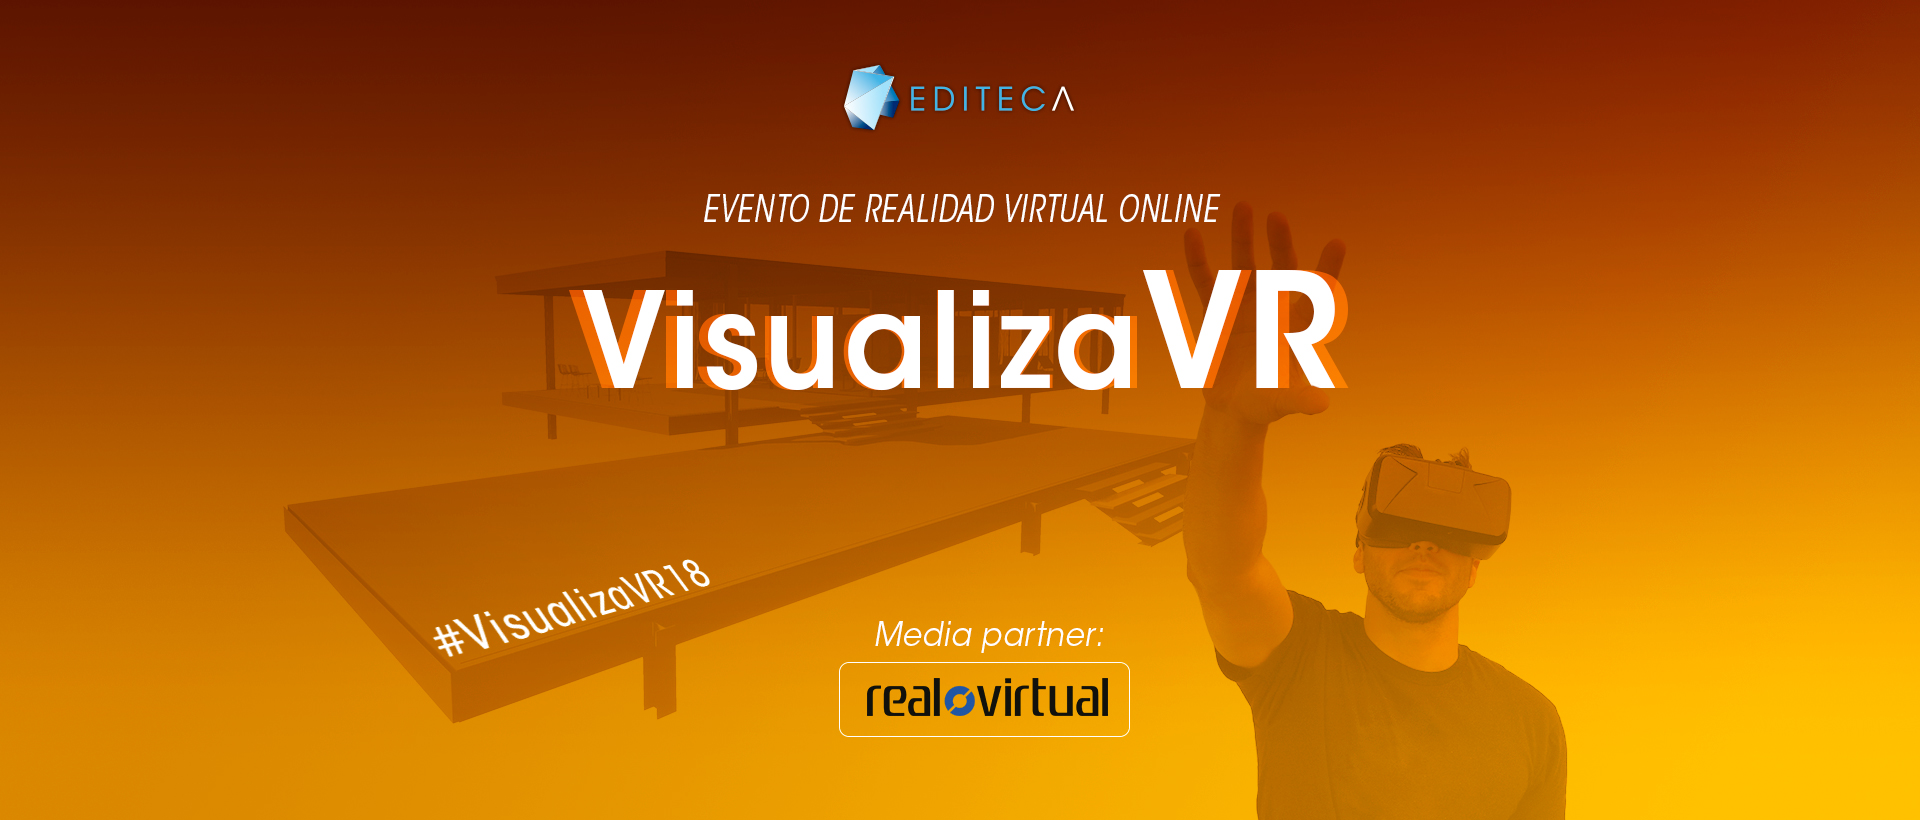 cabecera-web-evento-visualizaVR-18-EDITECA